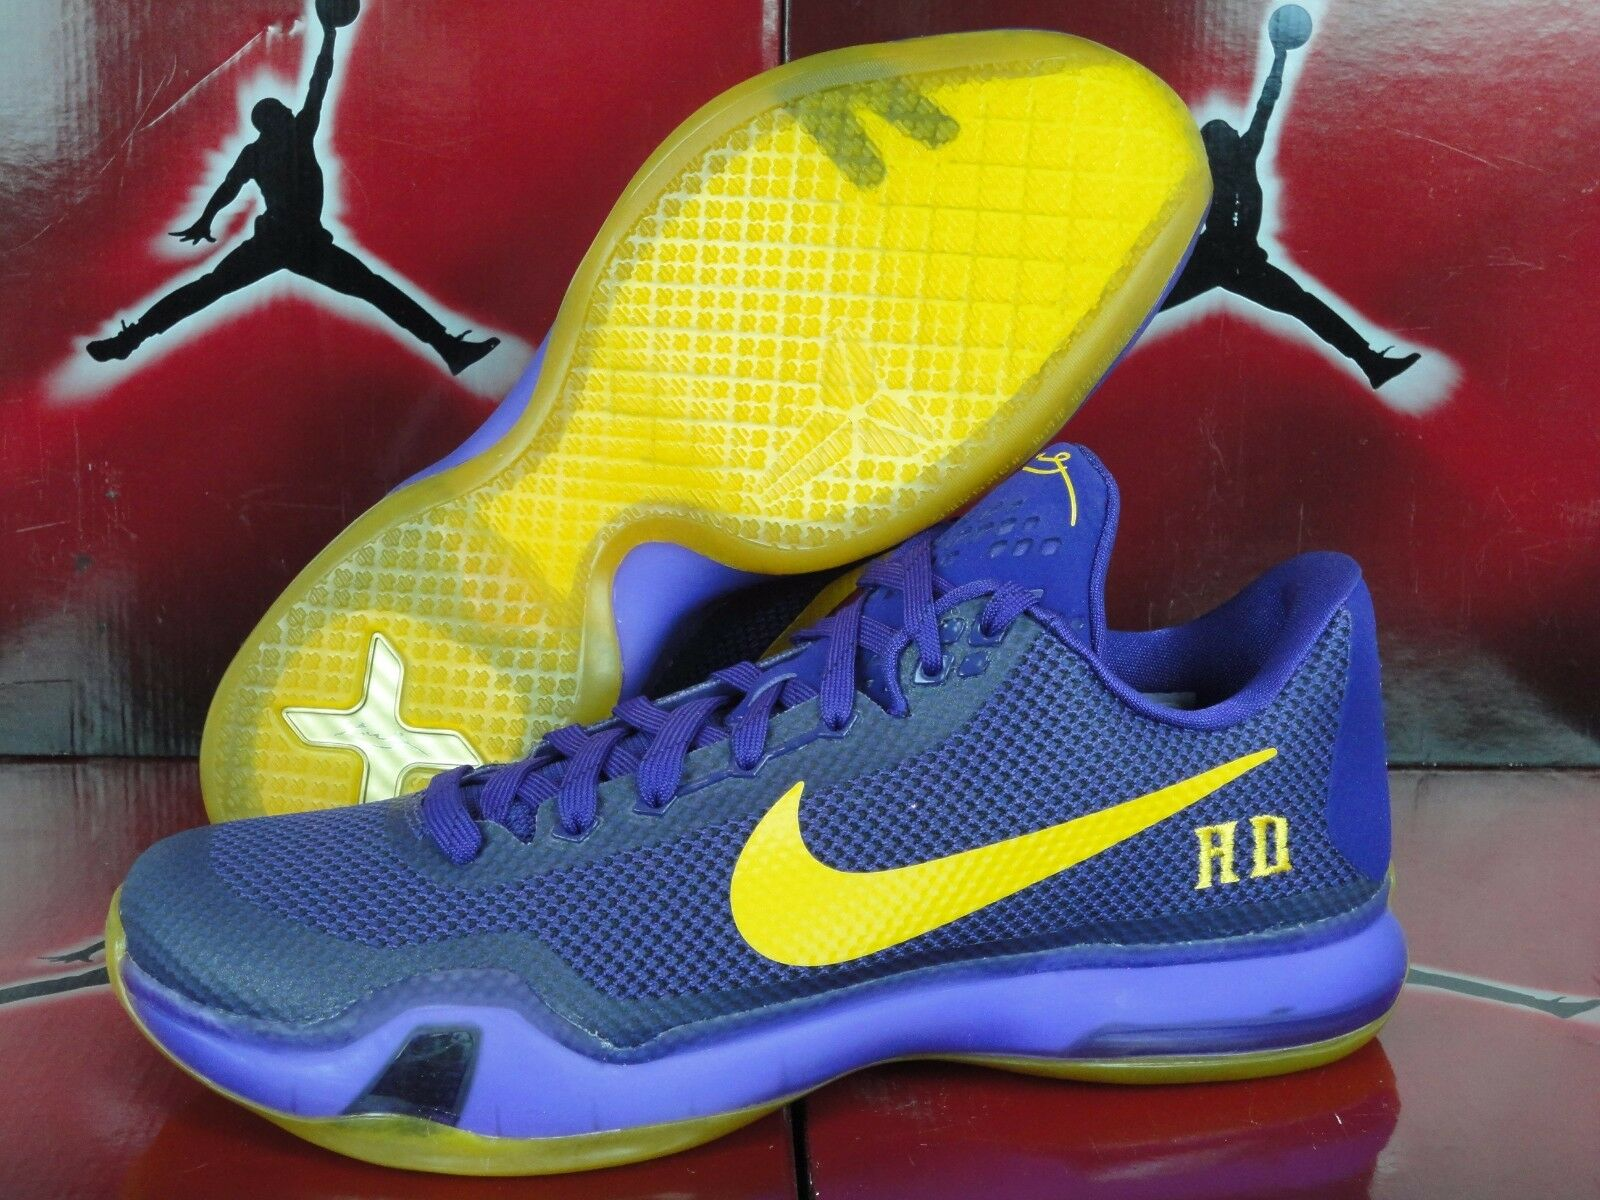 NEW Nike ID Kobe X 10 Low Lakers Purple Gold Yellow Price reduction Wild casual shoes